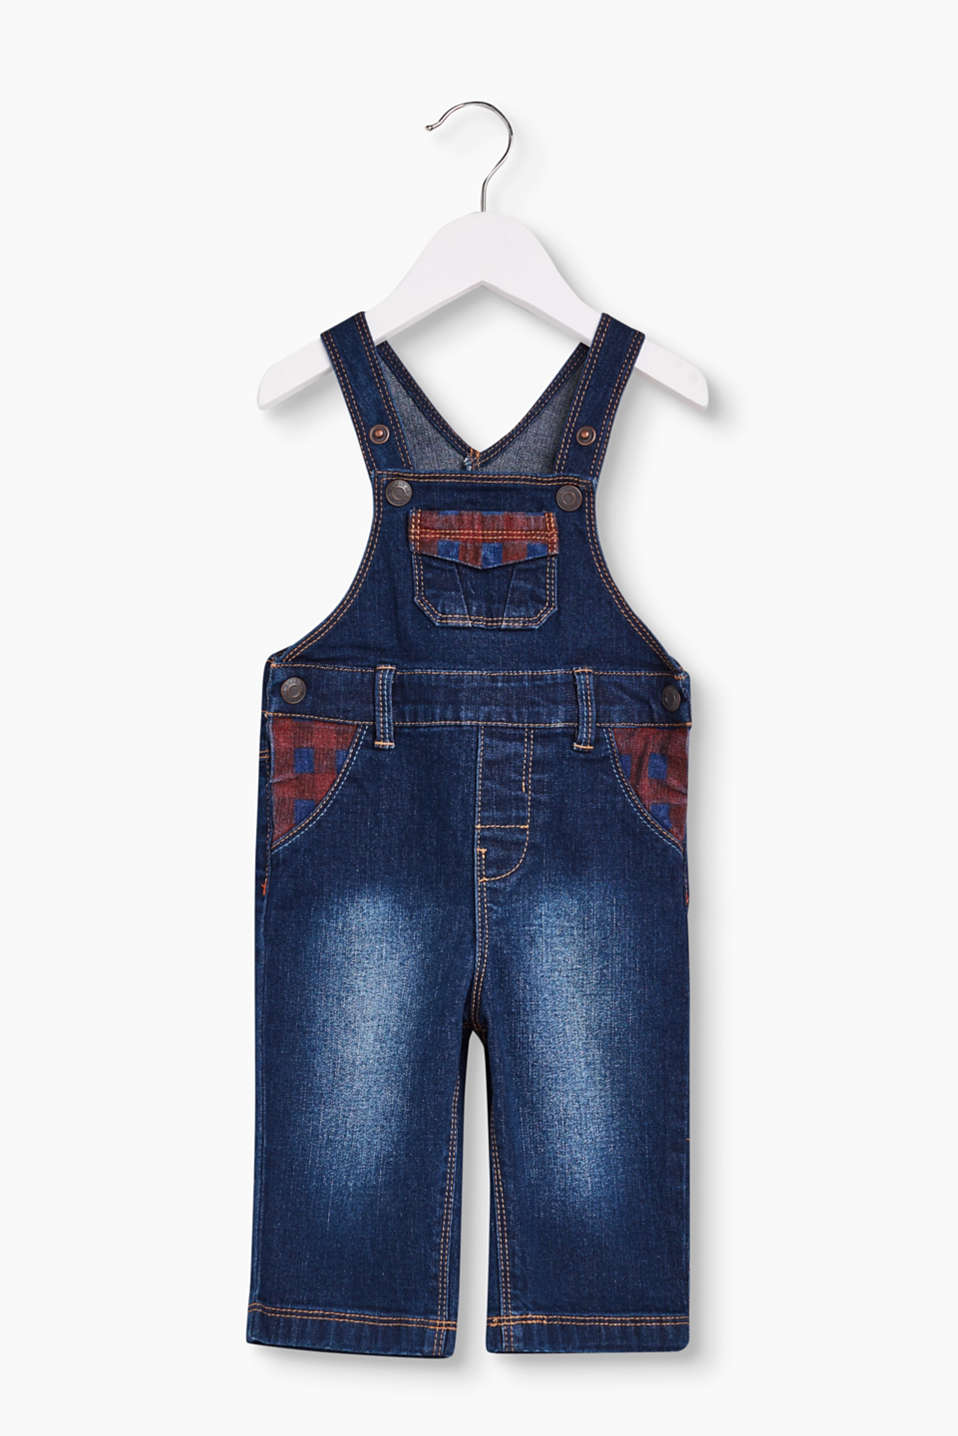 For cool denim boys! Dungarees with print yokes and cool garment-washed effects, pure cotton denim